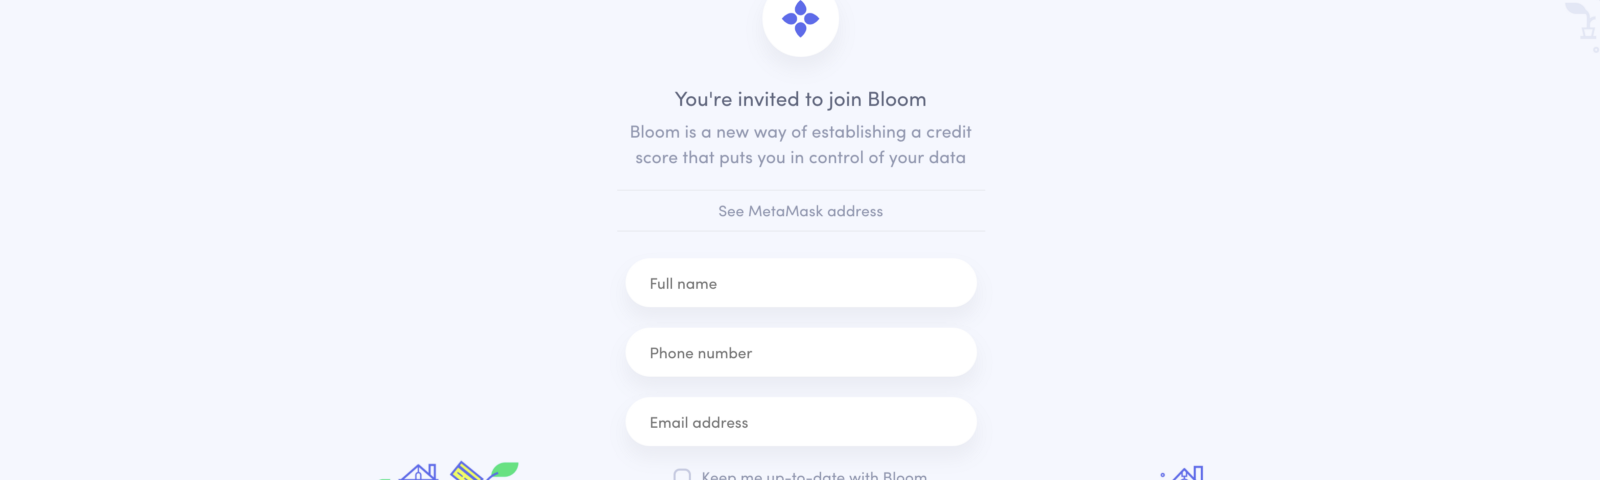 Metamask – Bloom